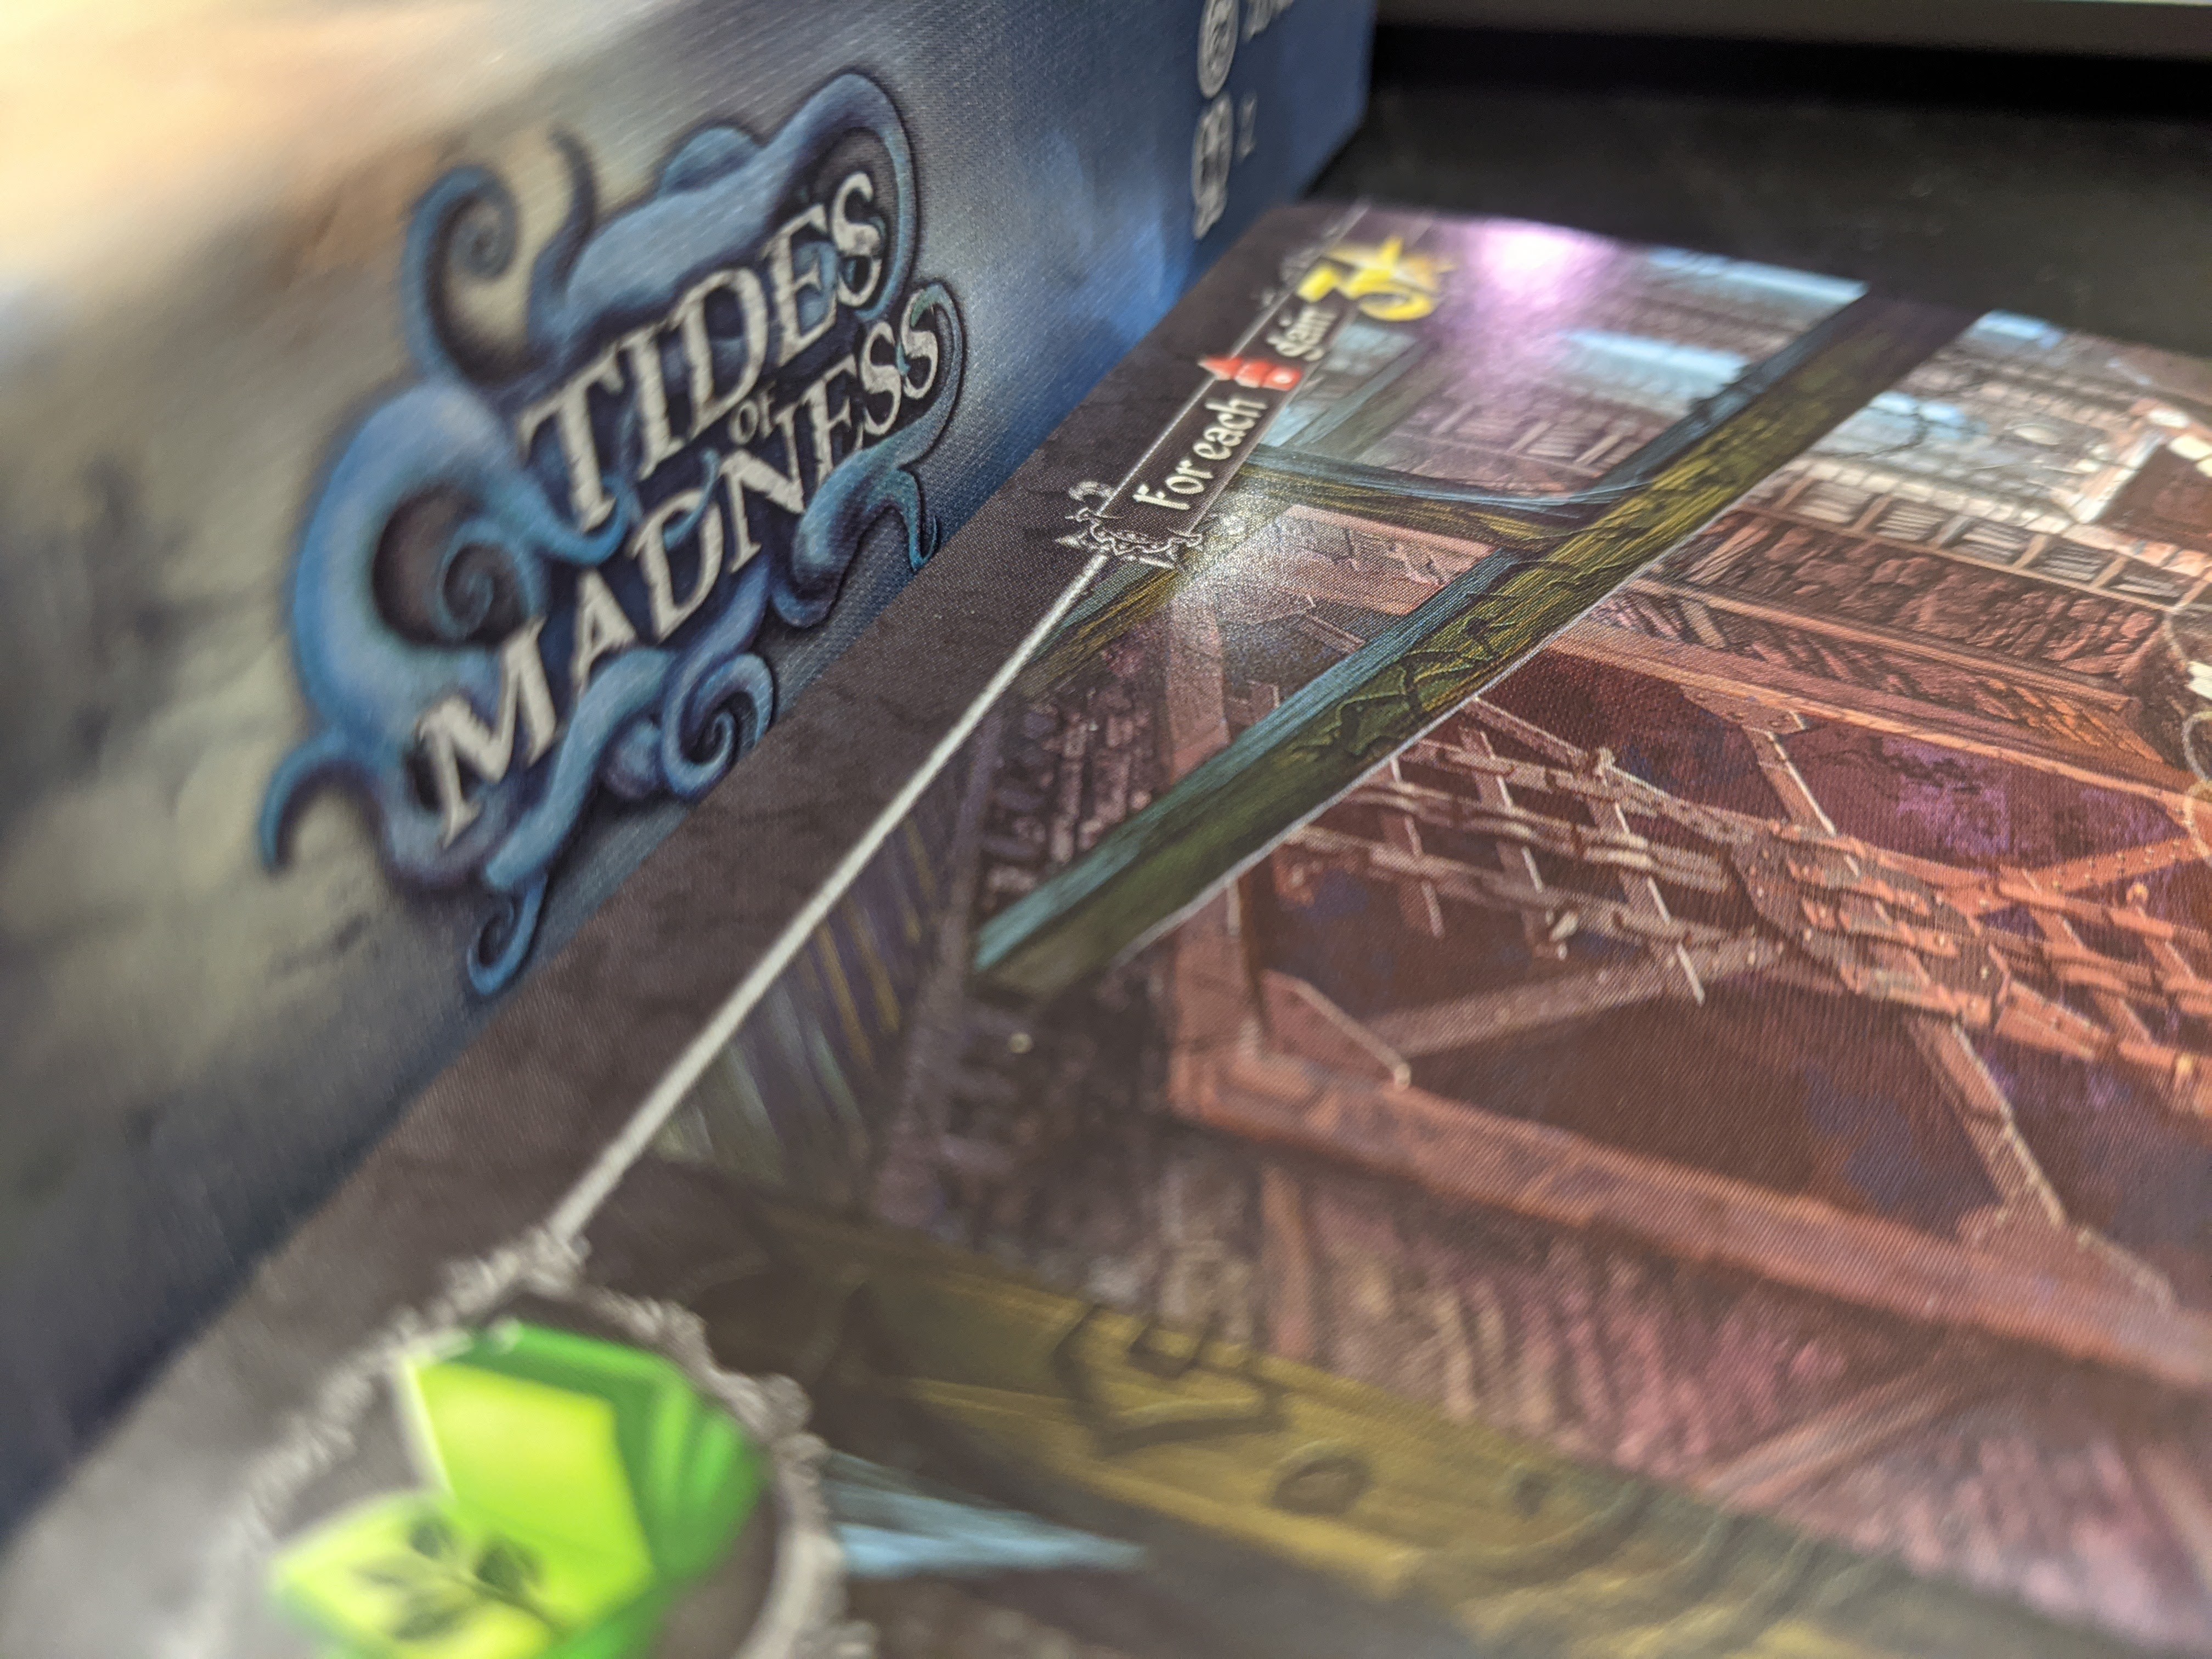 Up closes of the Tides of Madness box, showing card art.